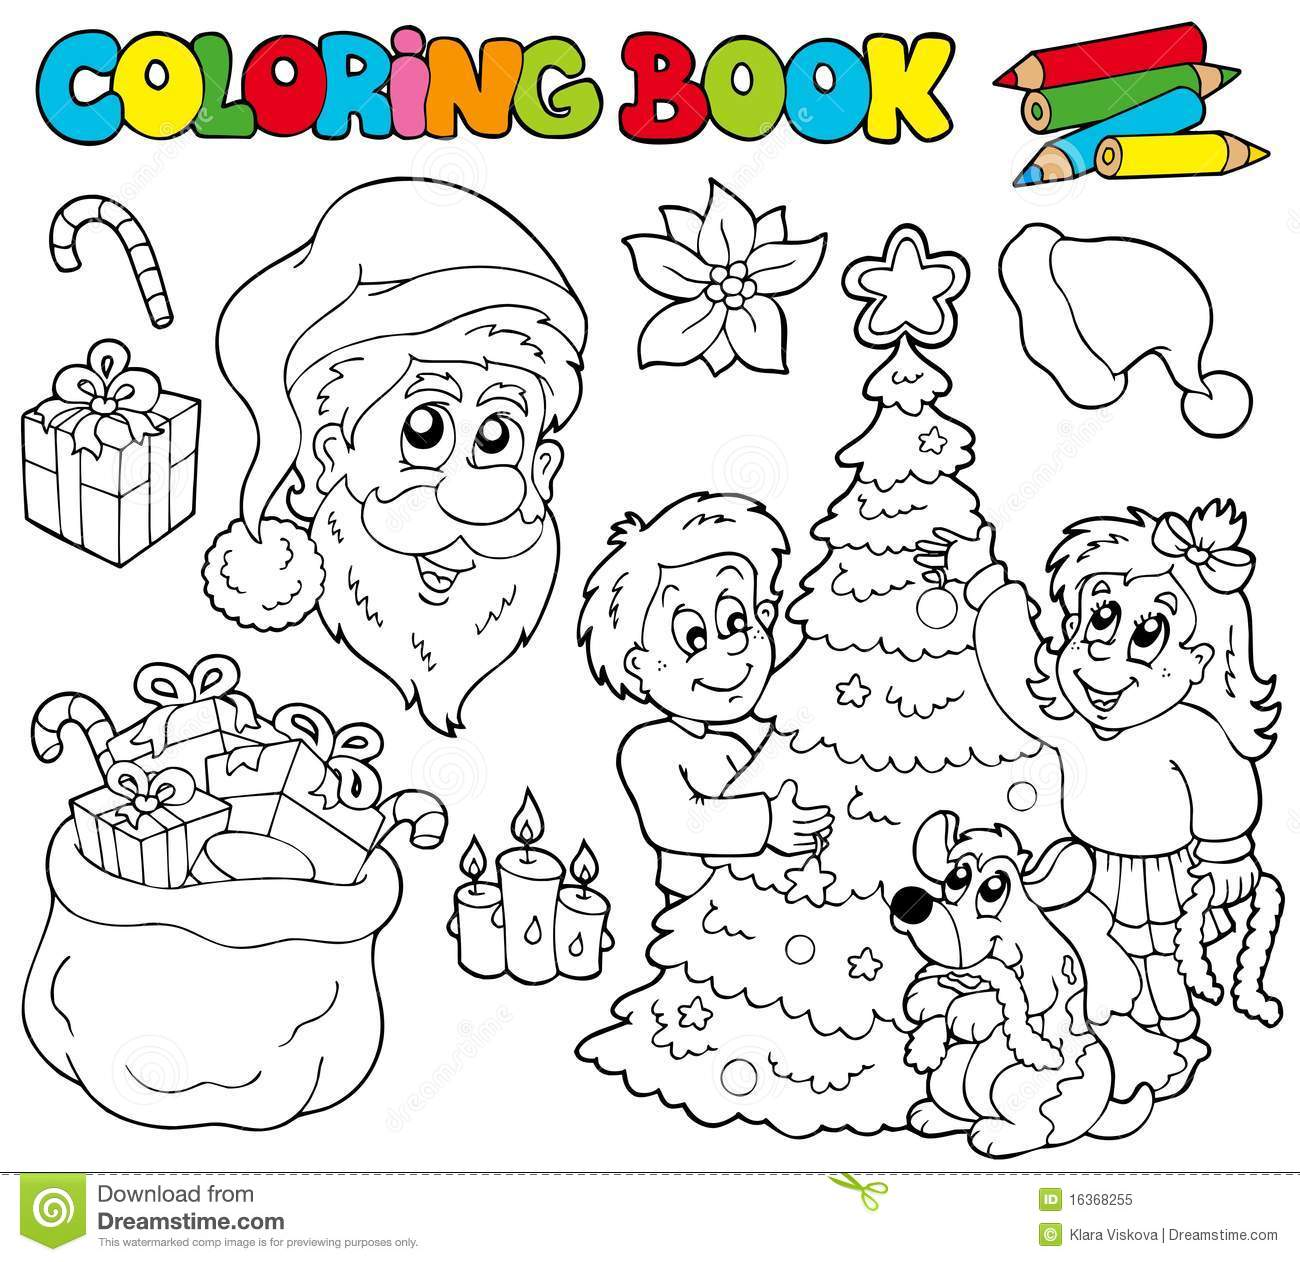 Coloring Book With Christmas Theme Stock Vector - Illustration of ...